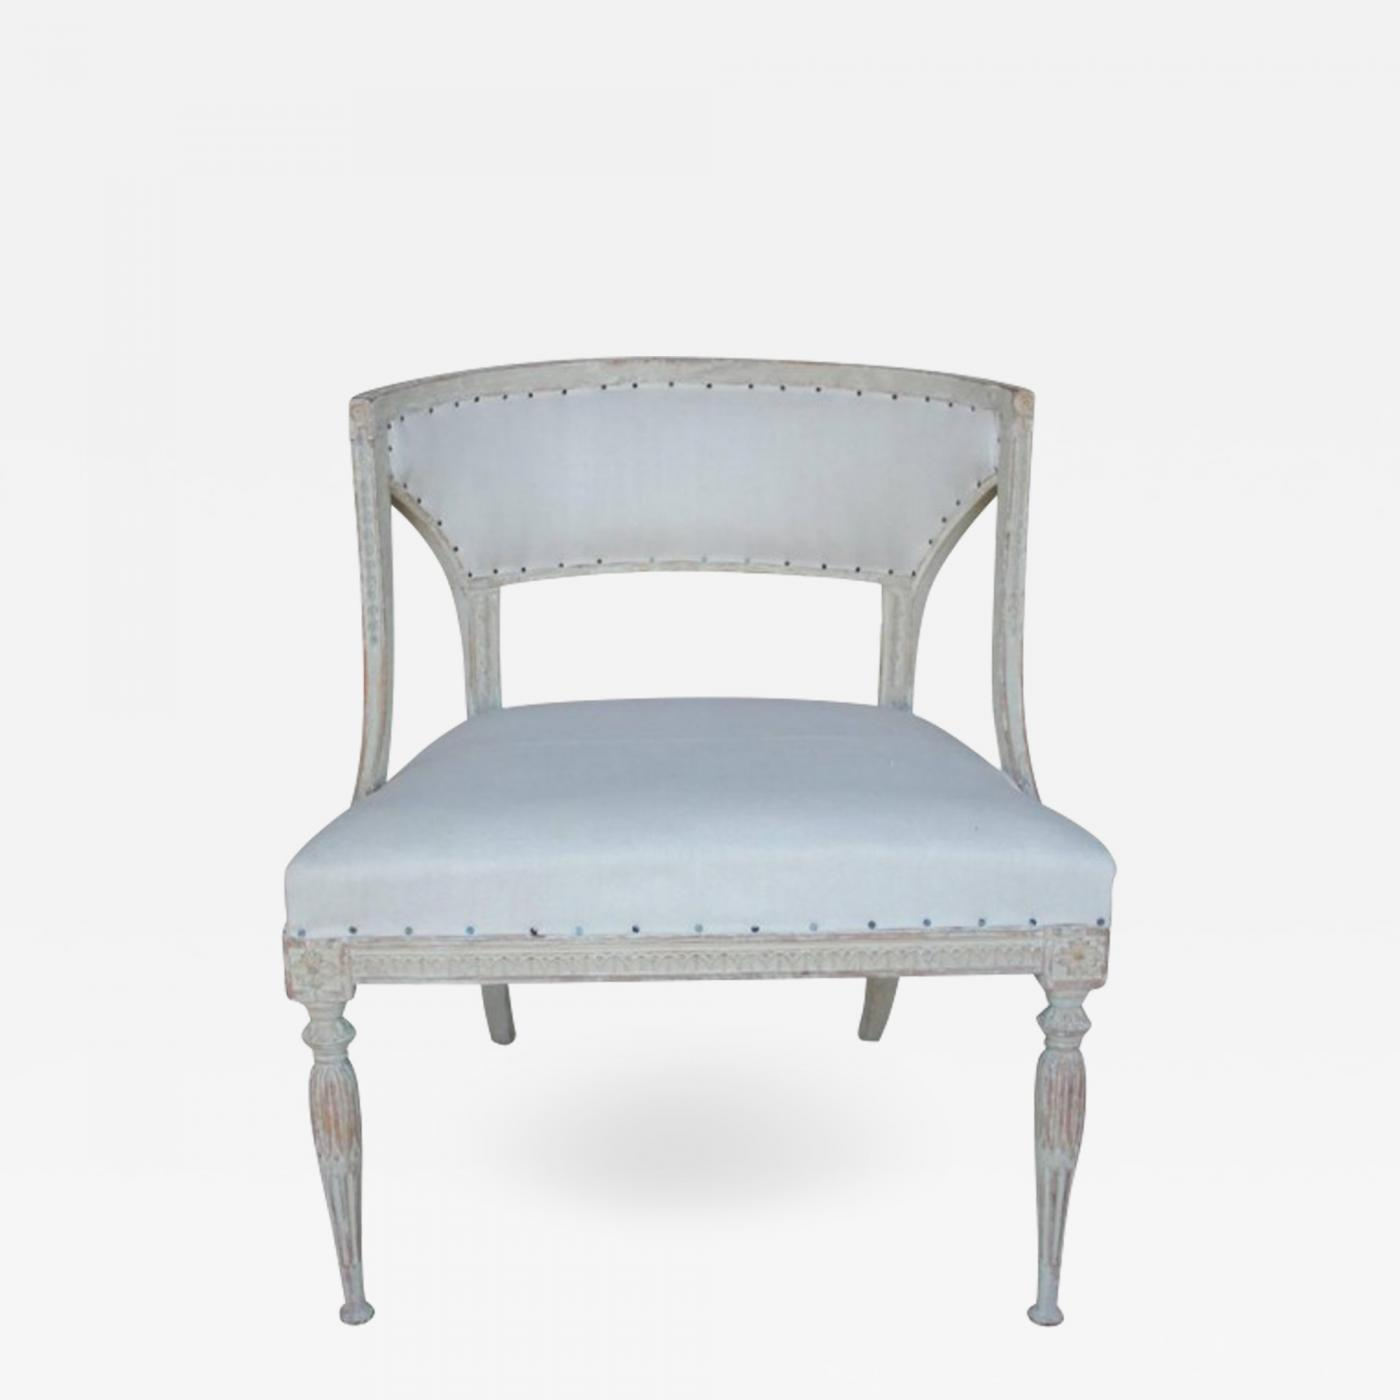 e99314f6031a9 18th Century Swedish Gustavian Period Original Paint Chair Signed Ephraim  Stahl